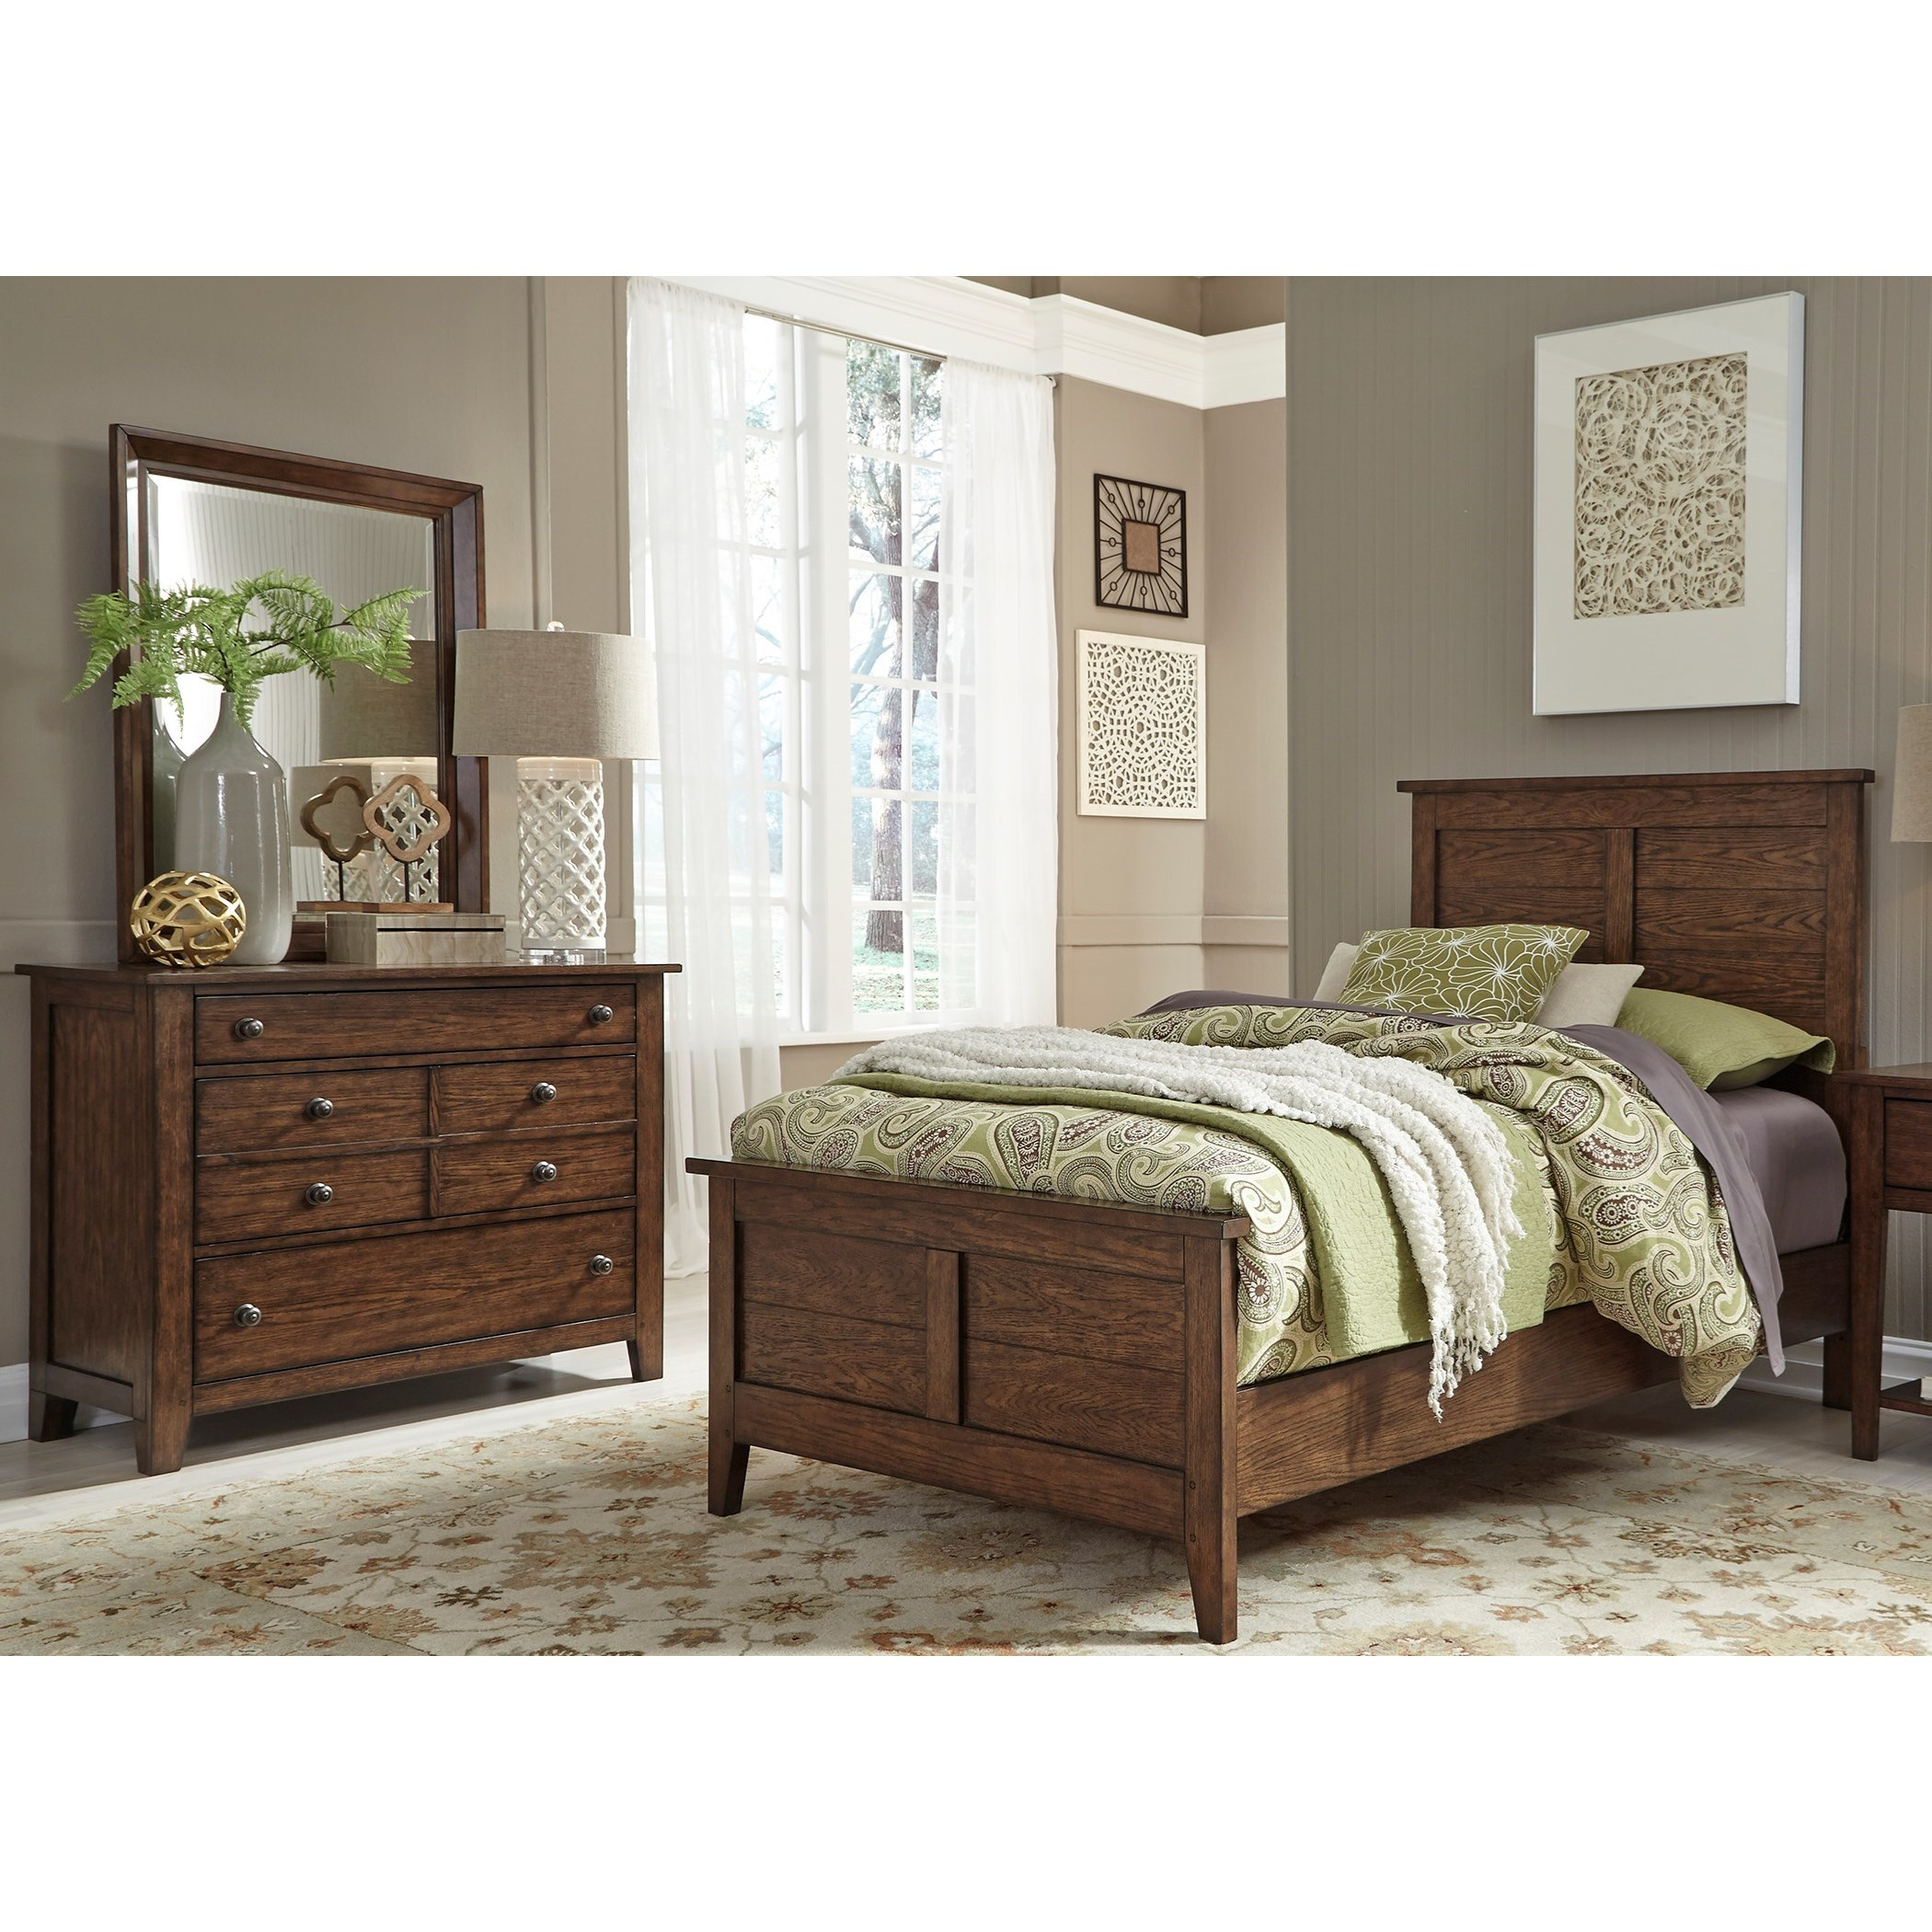 of collections discounts bedroom home liberty lovely furniture fresh sets